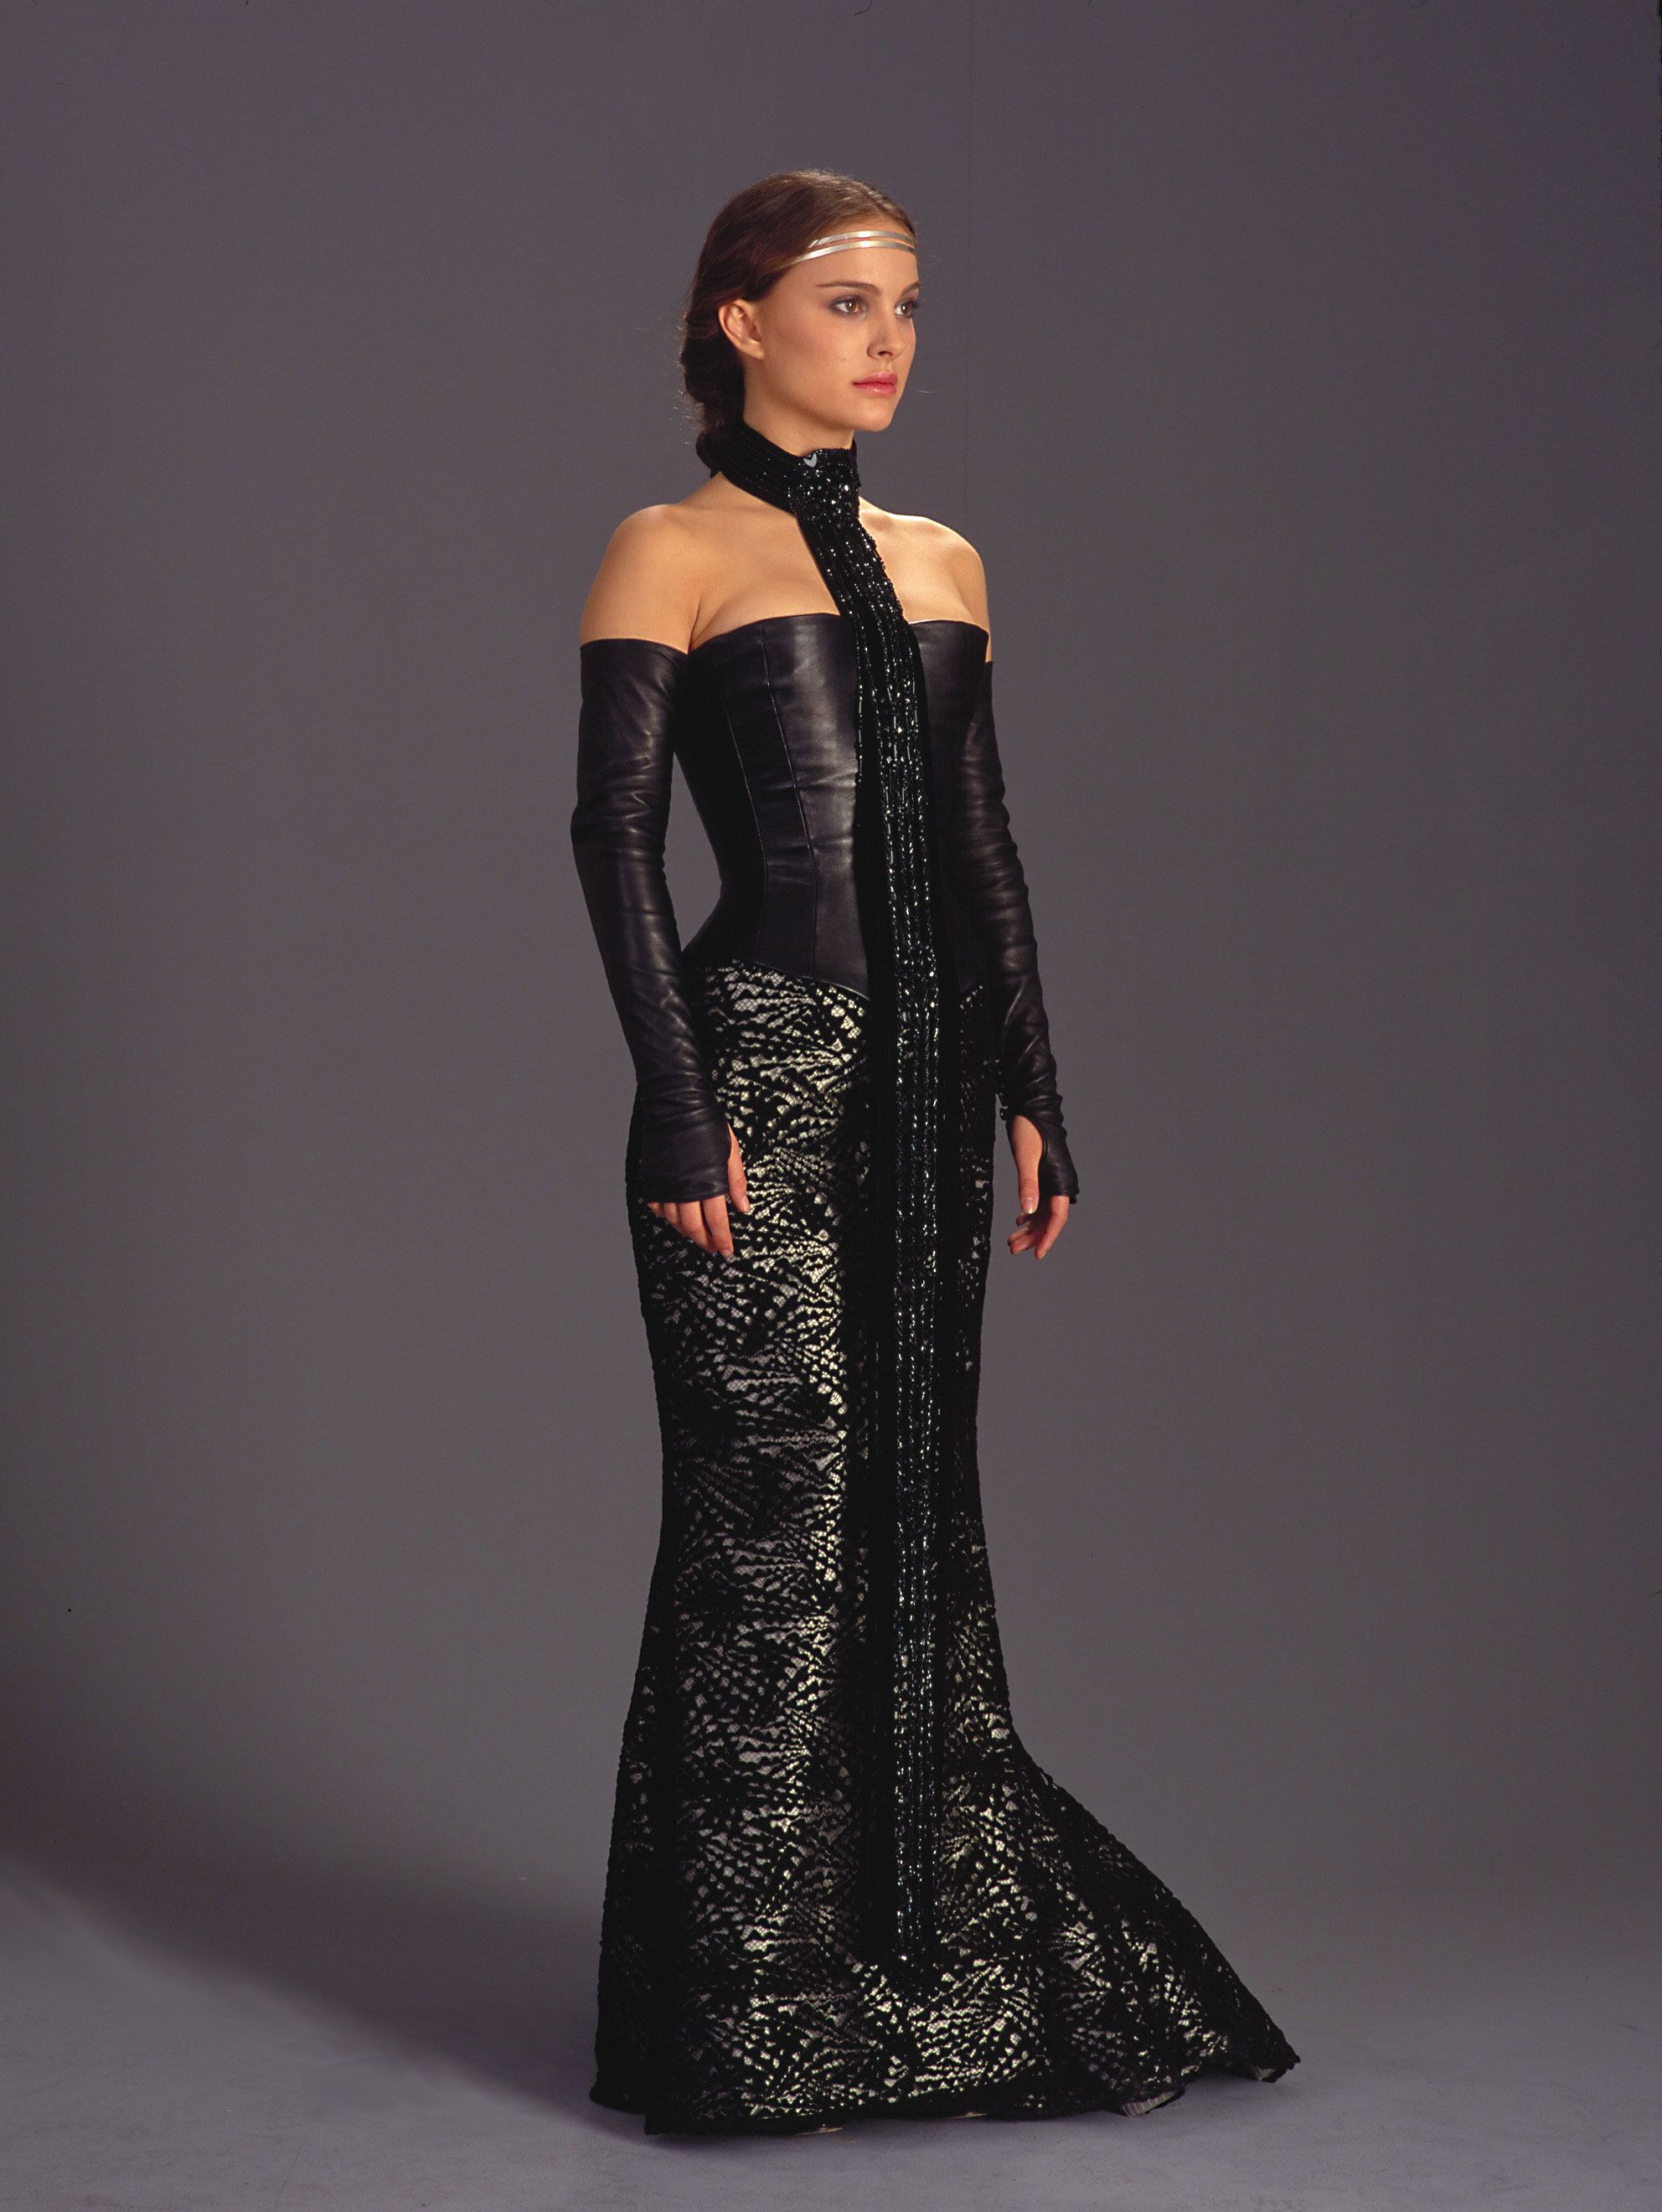 4ae979dc2e44c Natalie Portman's leather corset costume designed by George Lucas in Star  Wars Episode II.